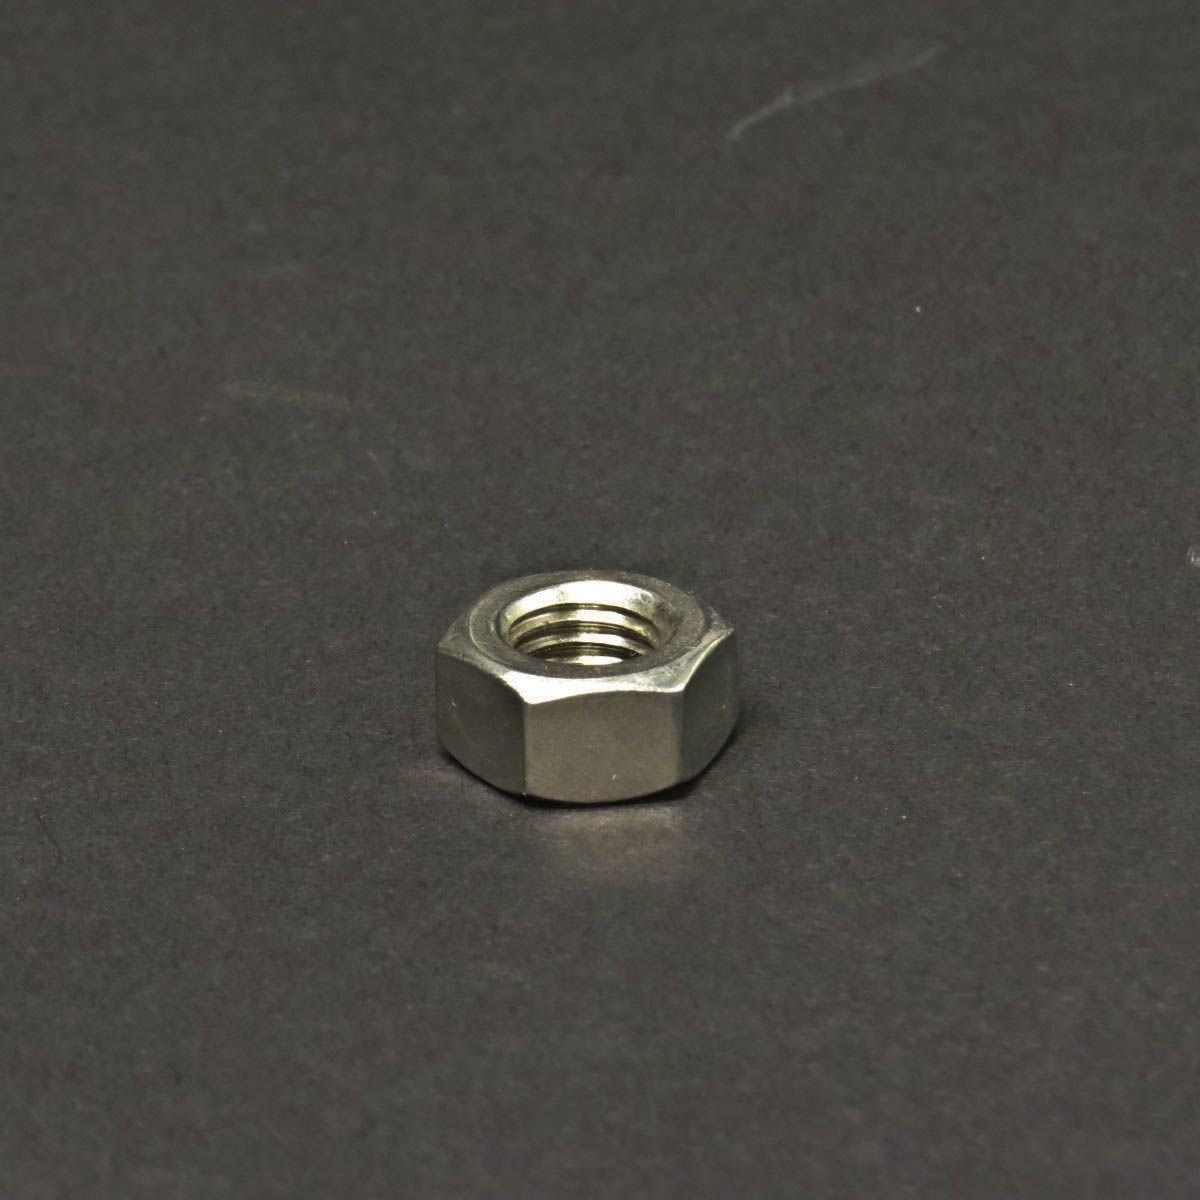 nut m10 stainless steel a2 din 934